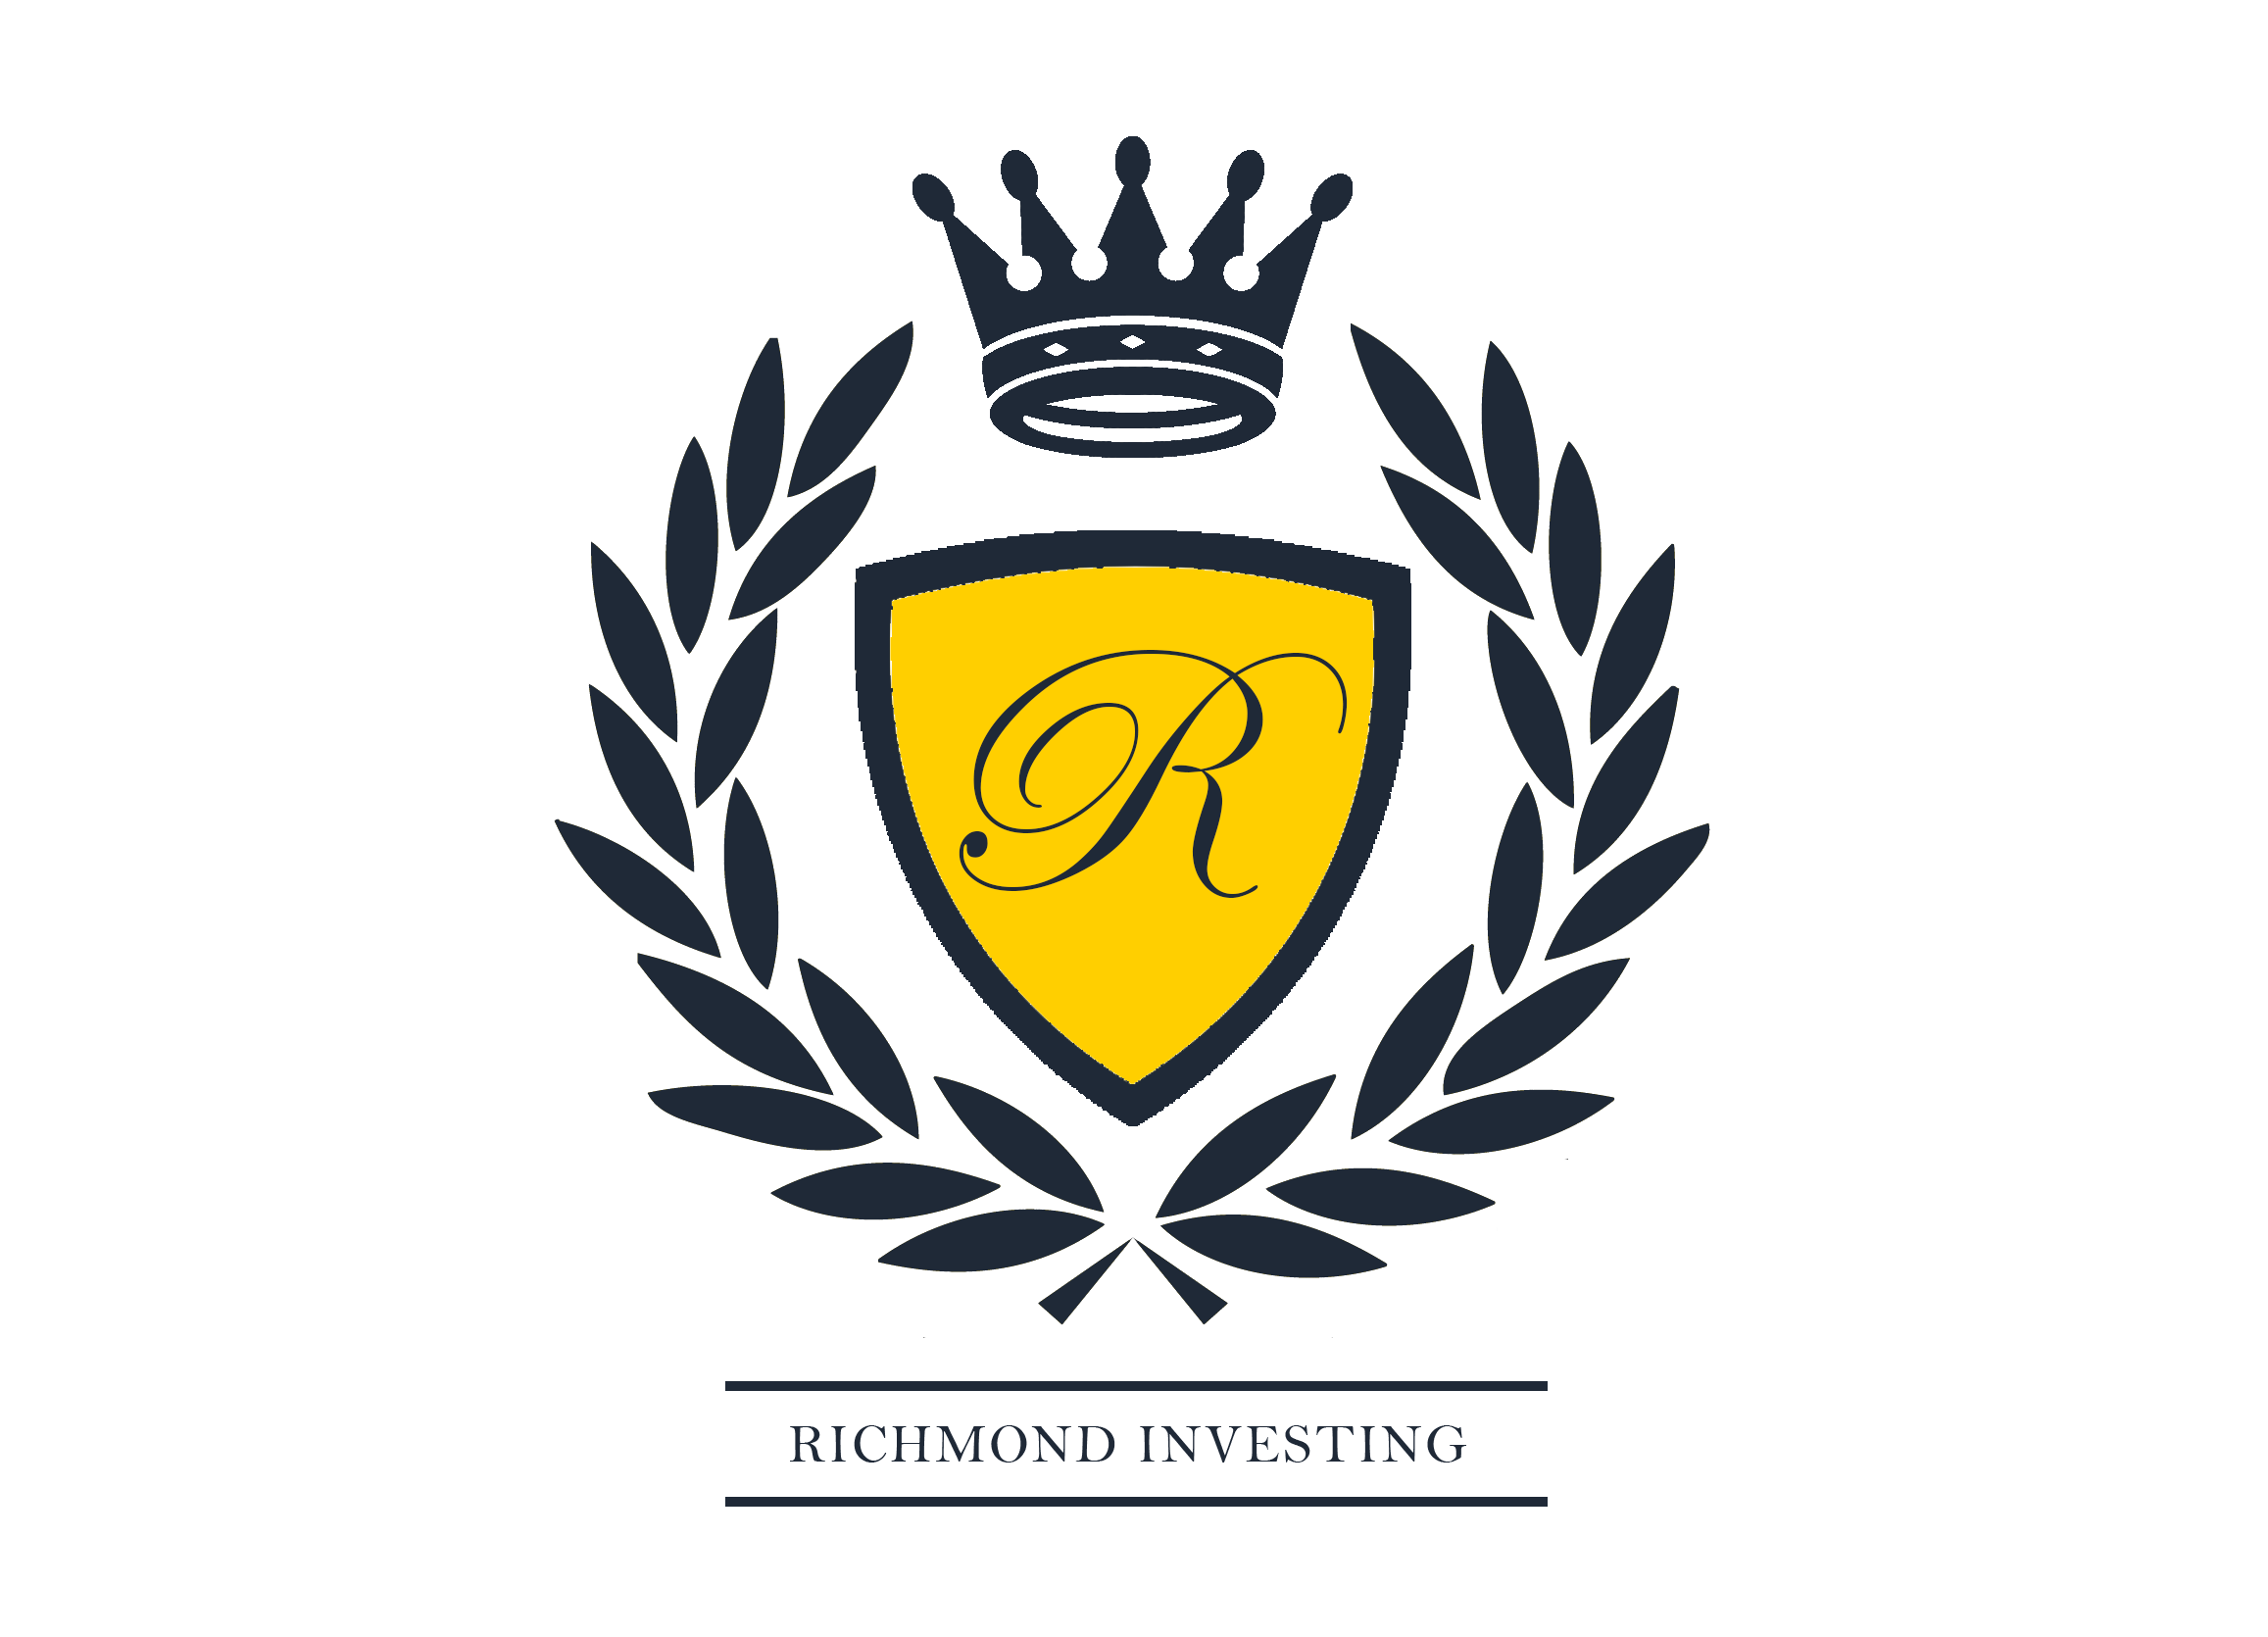 Richmond Investing